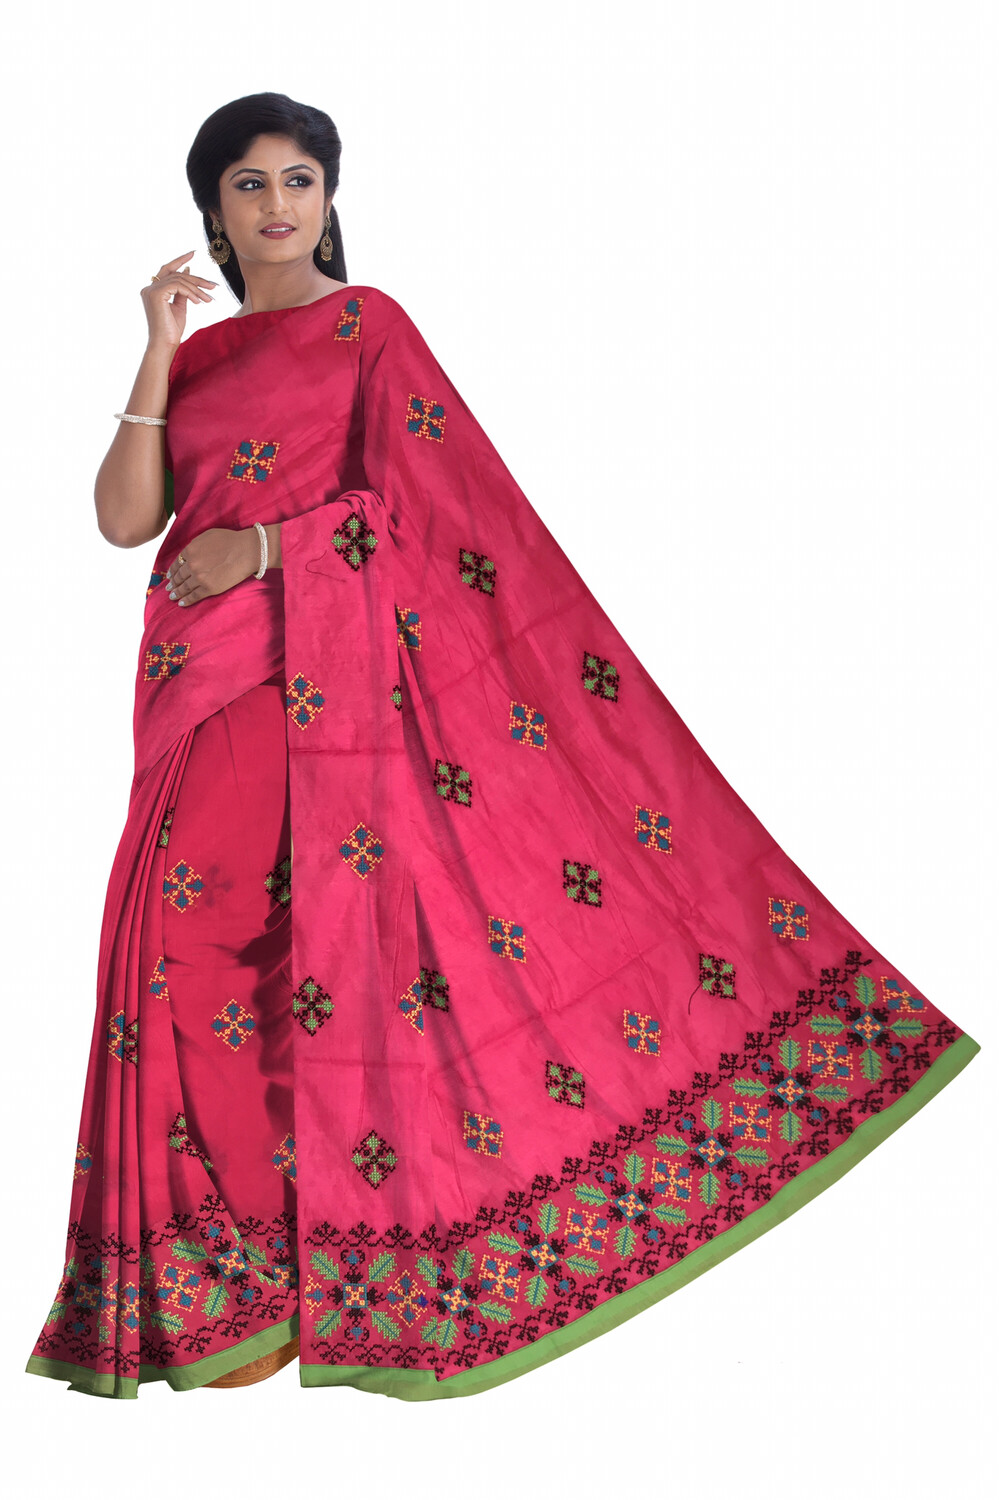 Ready To Wear Mekhela chador with Kashmiri thread work